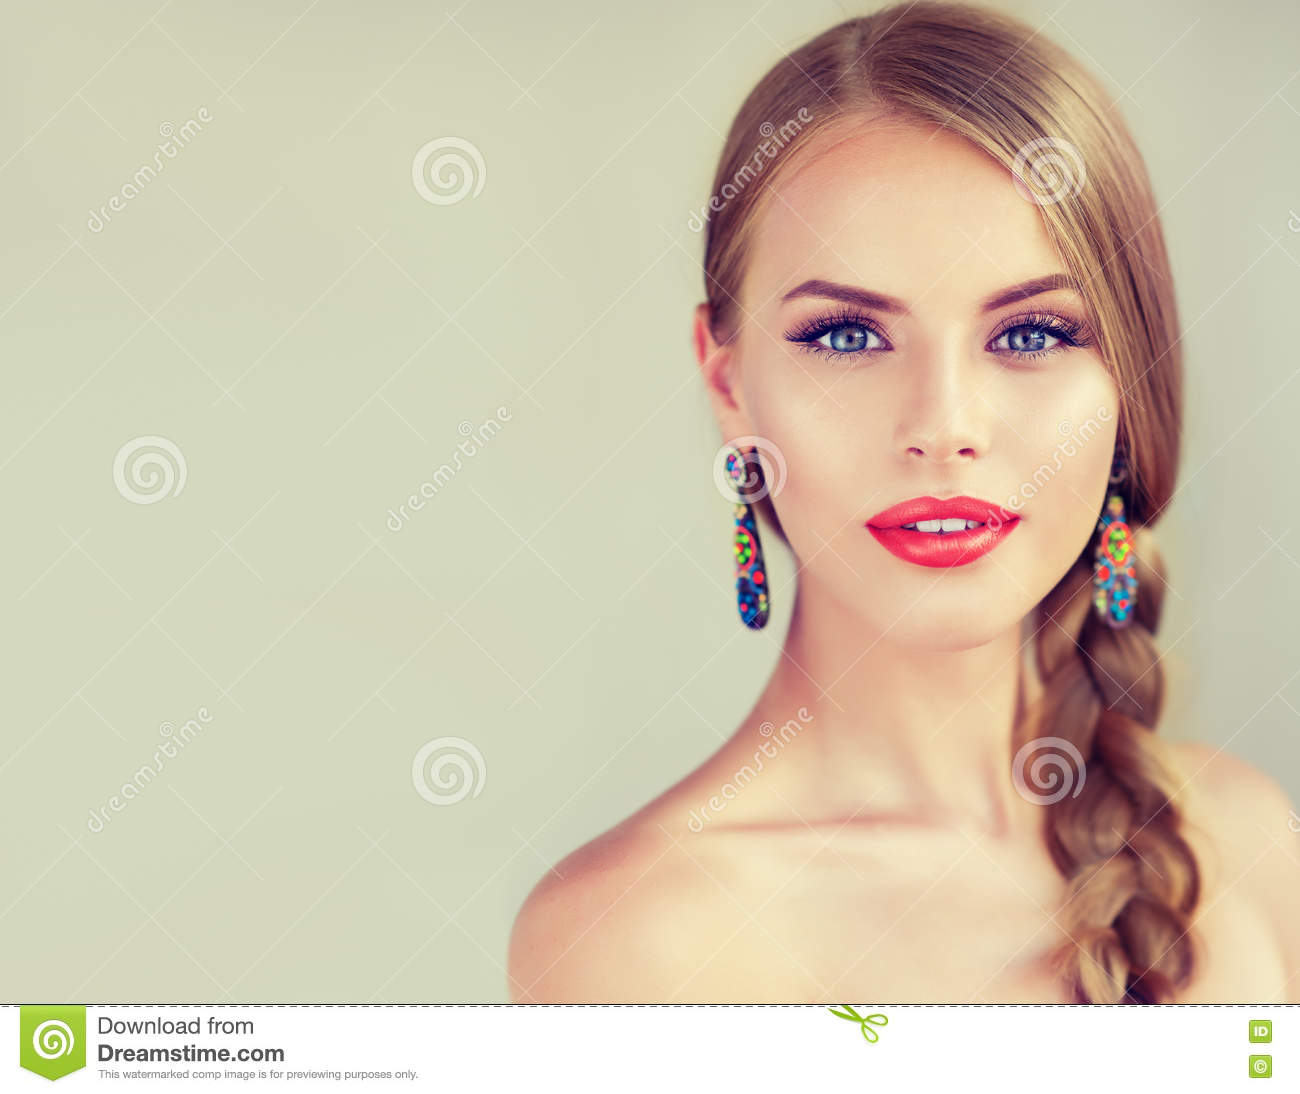 Beautiful young woman with braidpigtail.